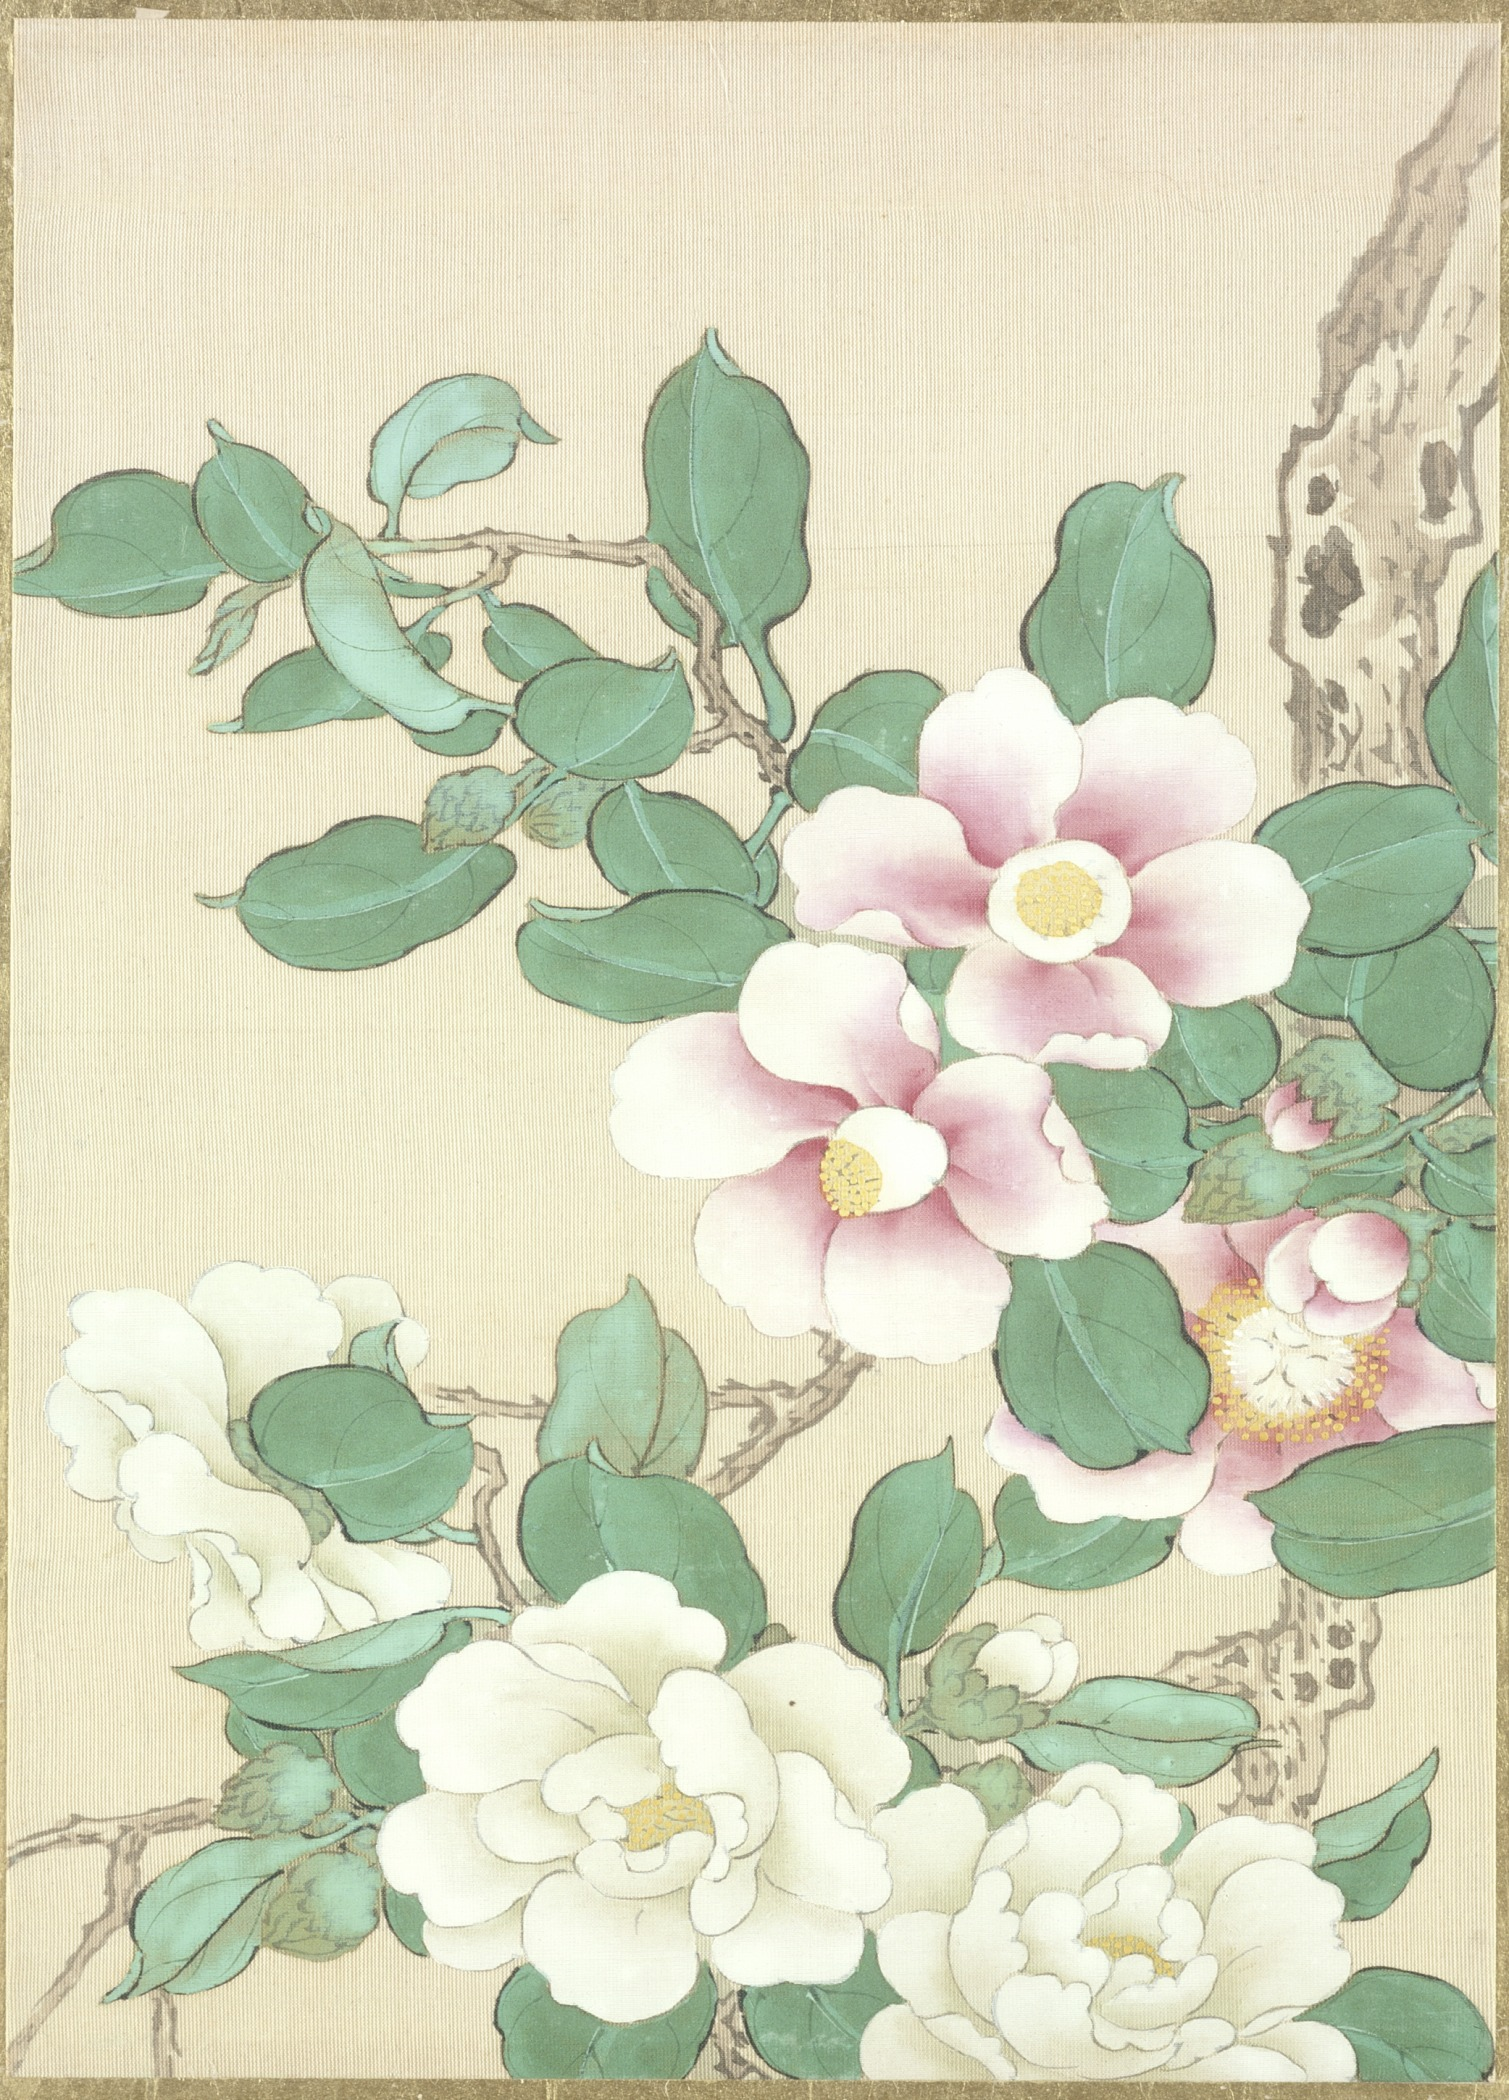 https://upload.wikimedia.org/wikipedia/commons/1/10/Pictures_of_Flowers_and_Birds_LACMA_M.85.99_%2819_of_25%29.jpg